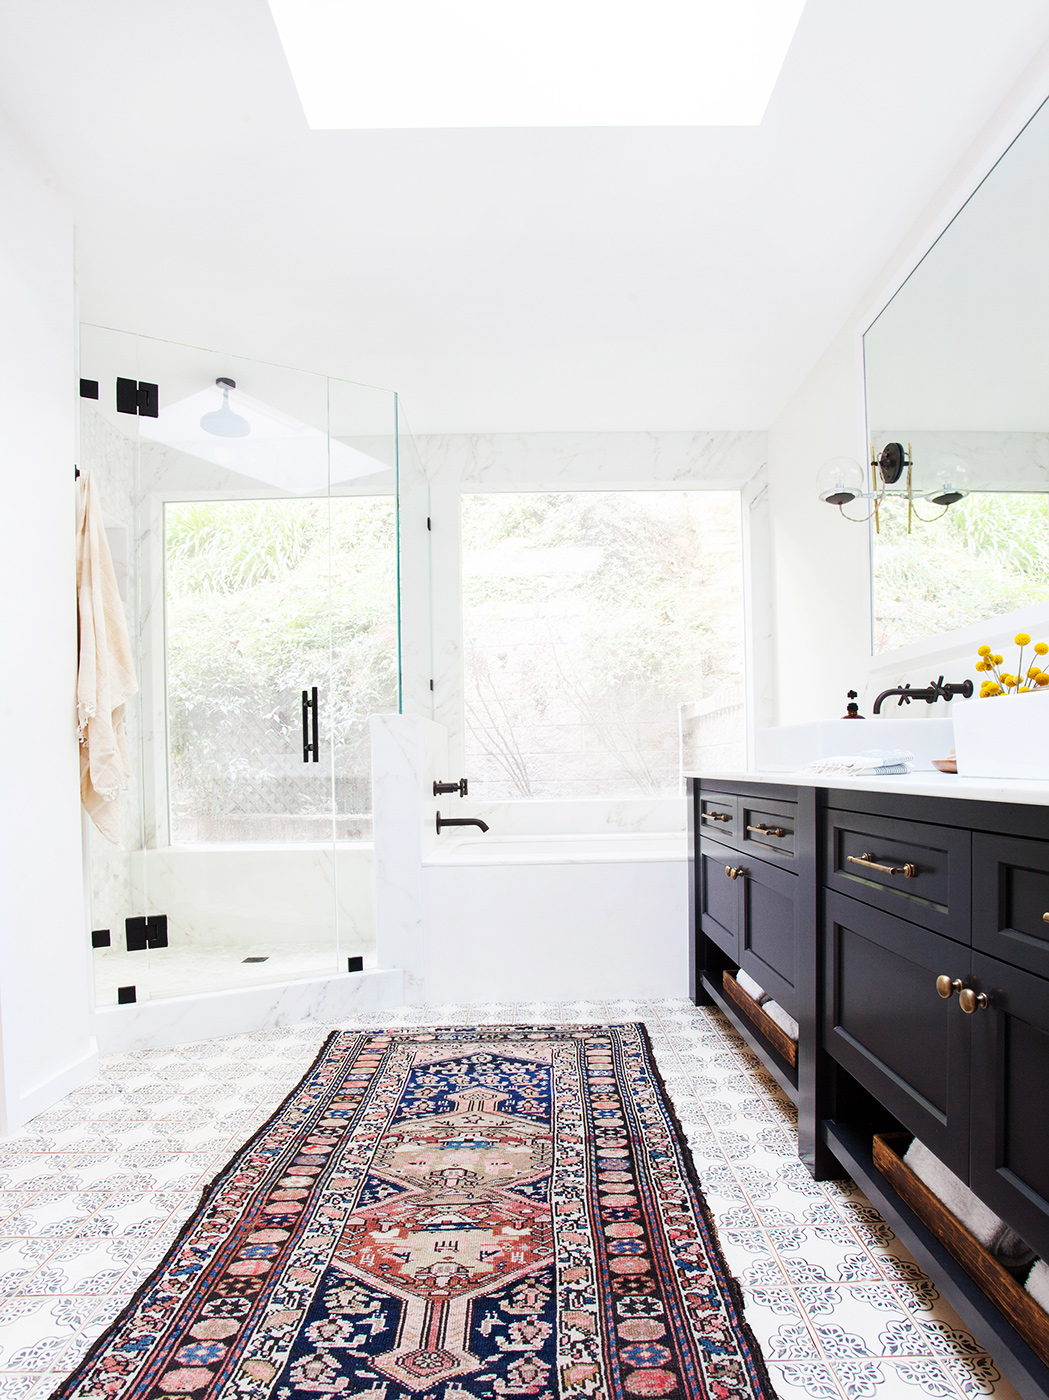 trend alert: persian rugs in the bathroom | mydomaine